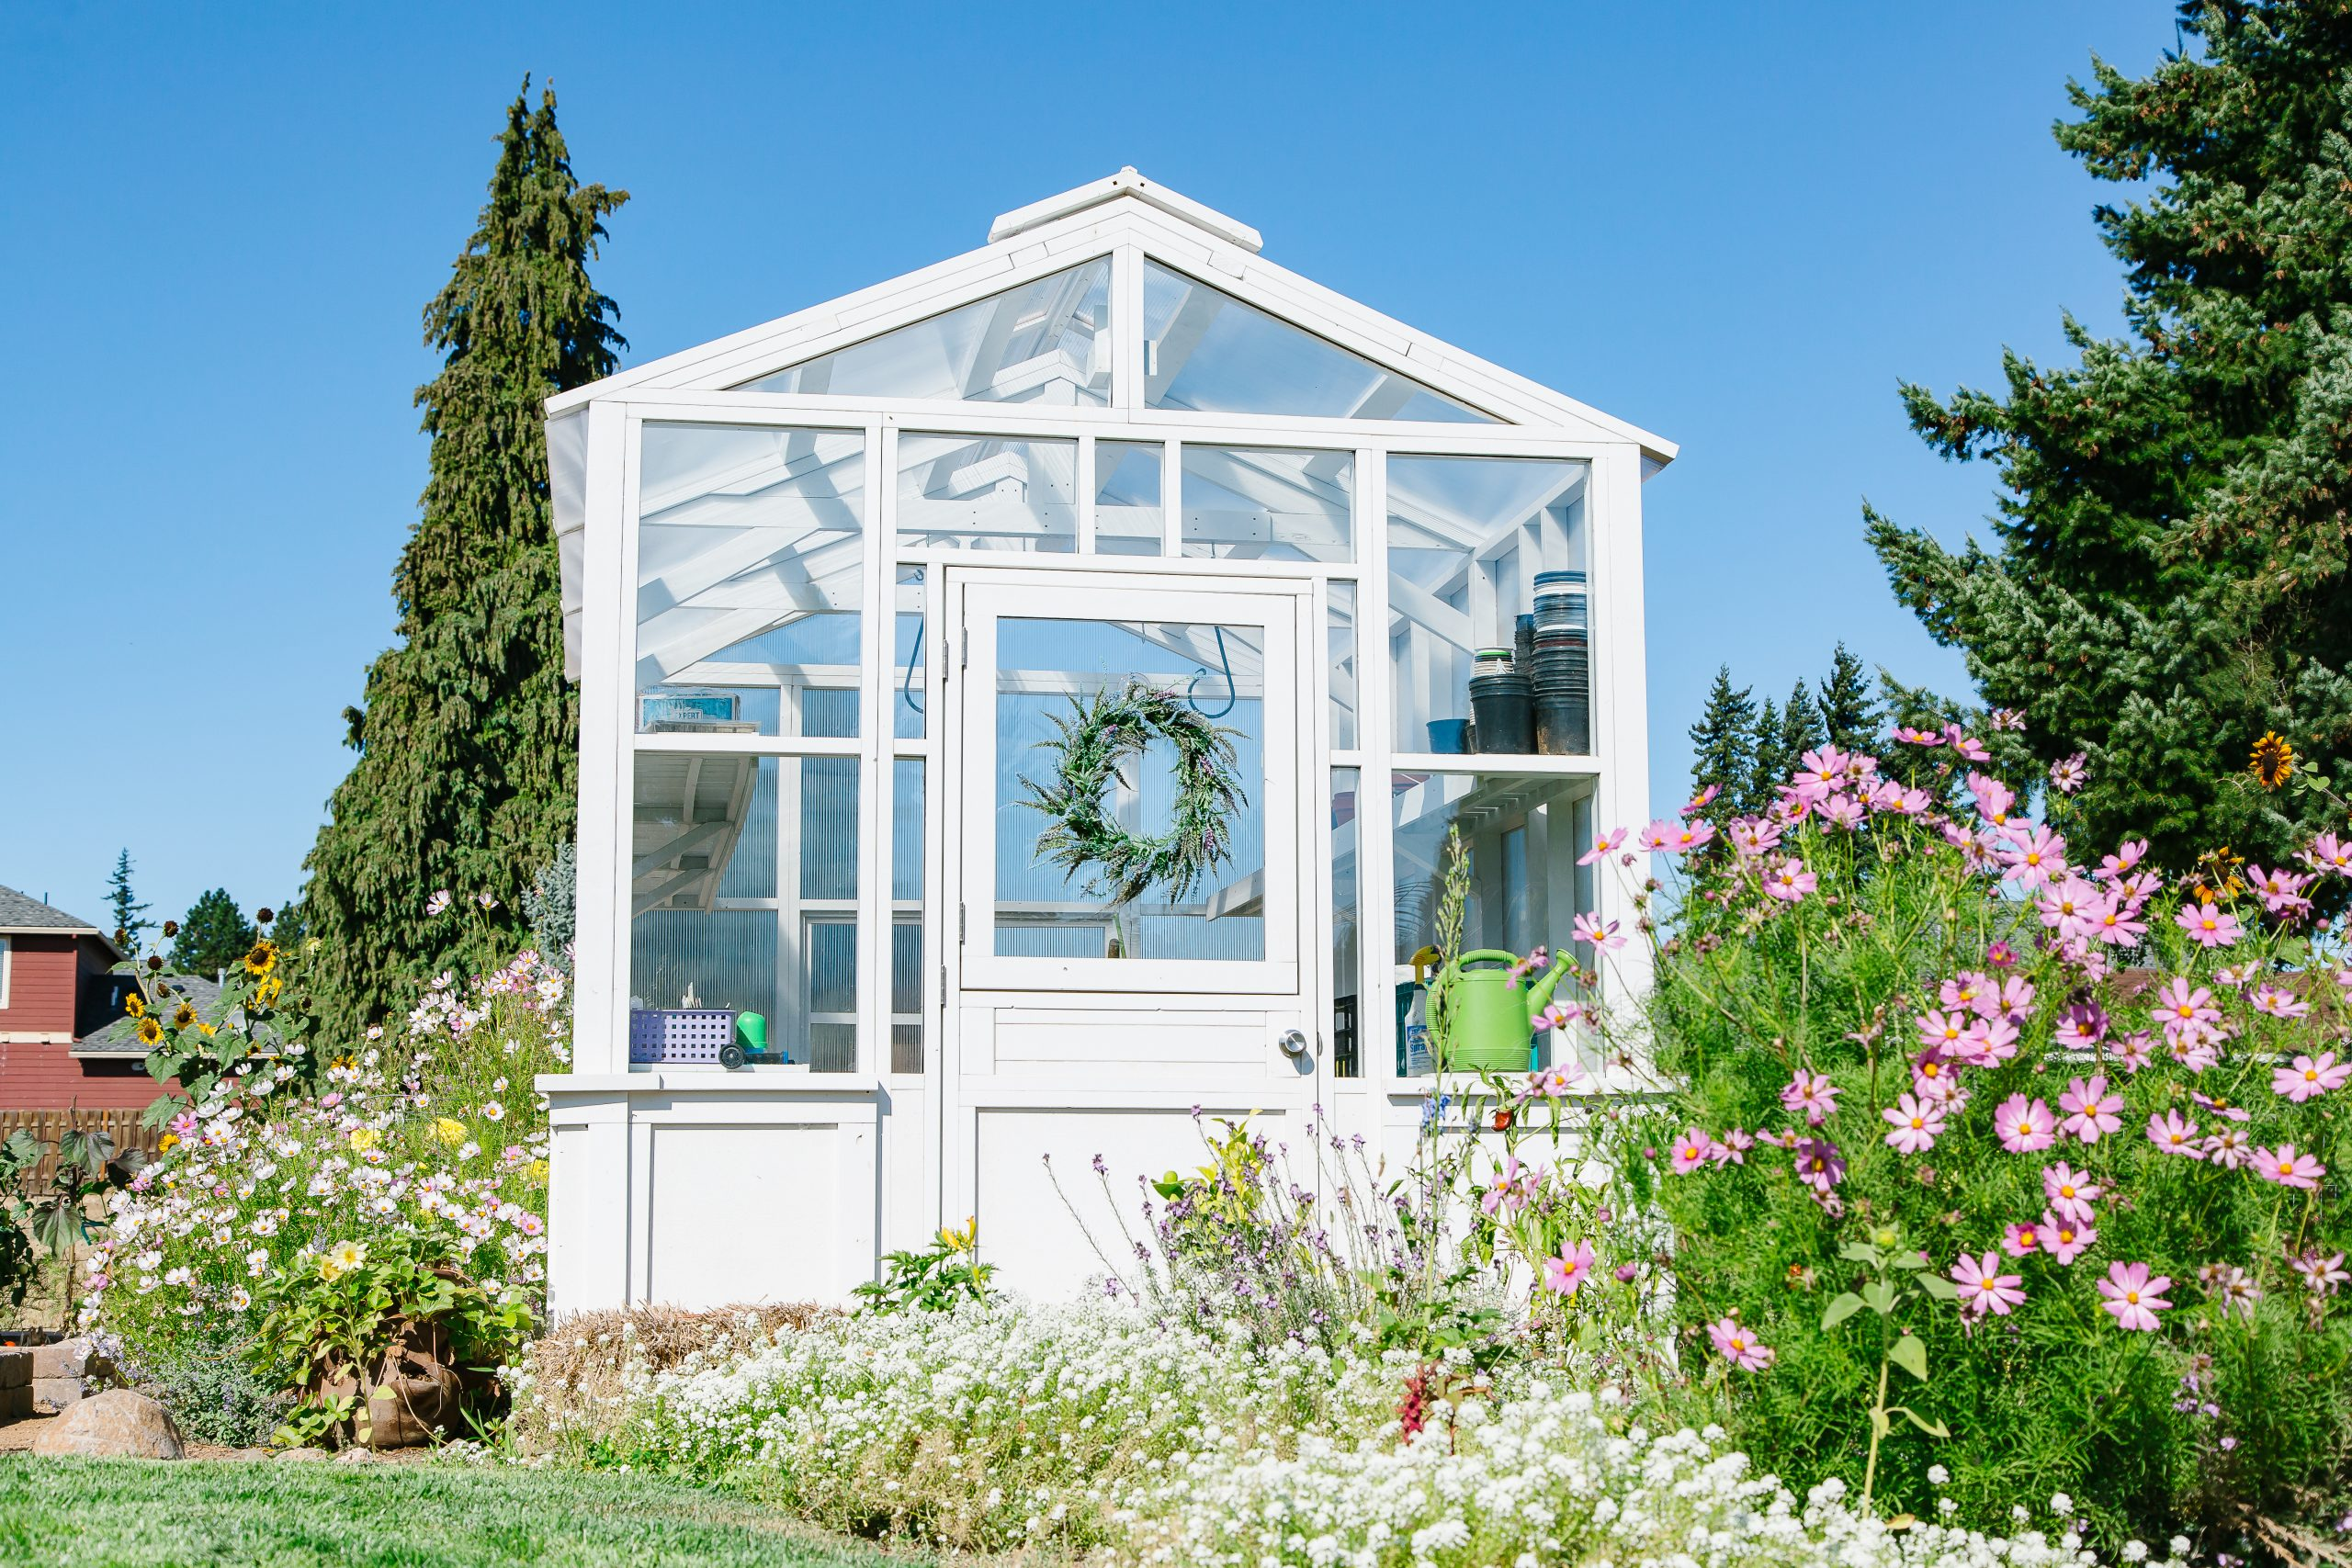 Greenhouse Inspiration For Your Backyard